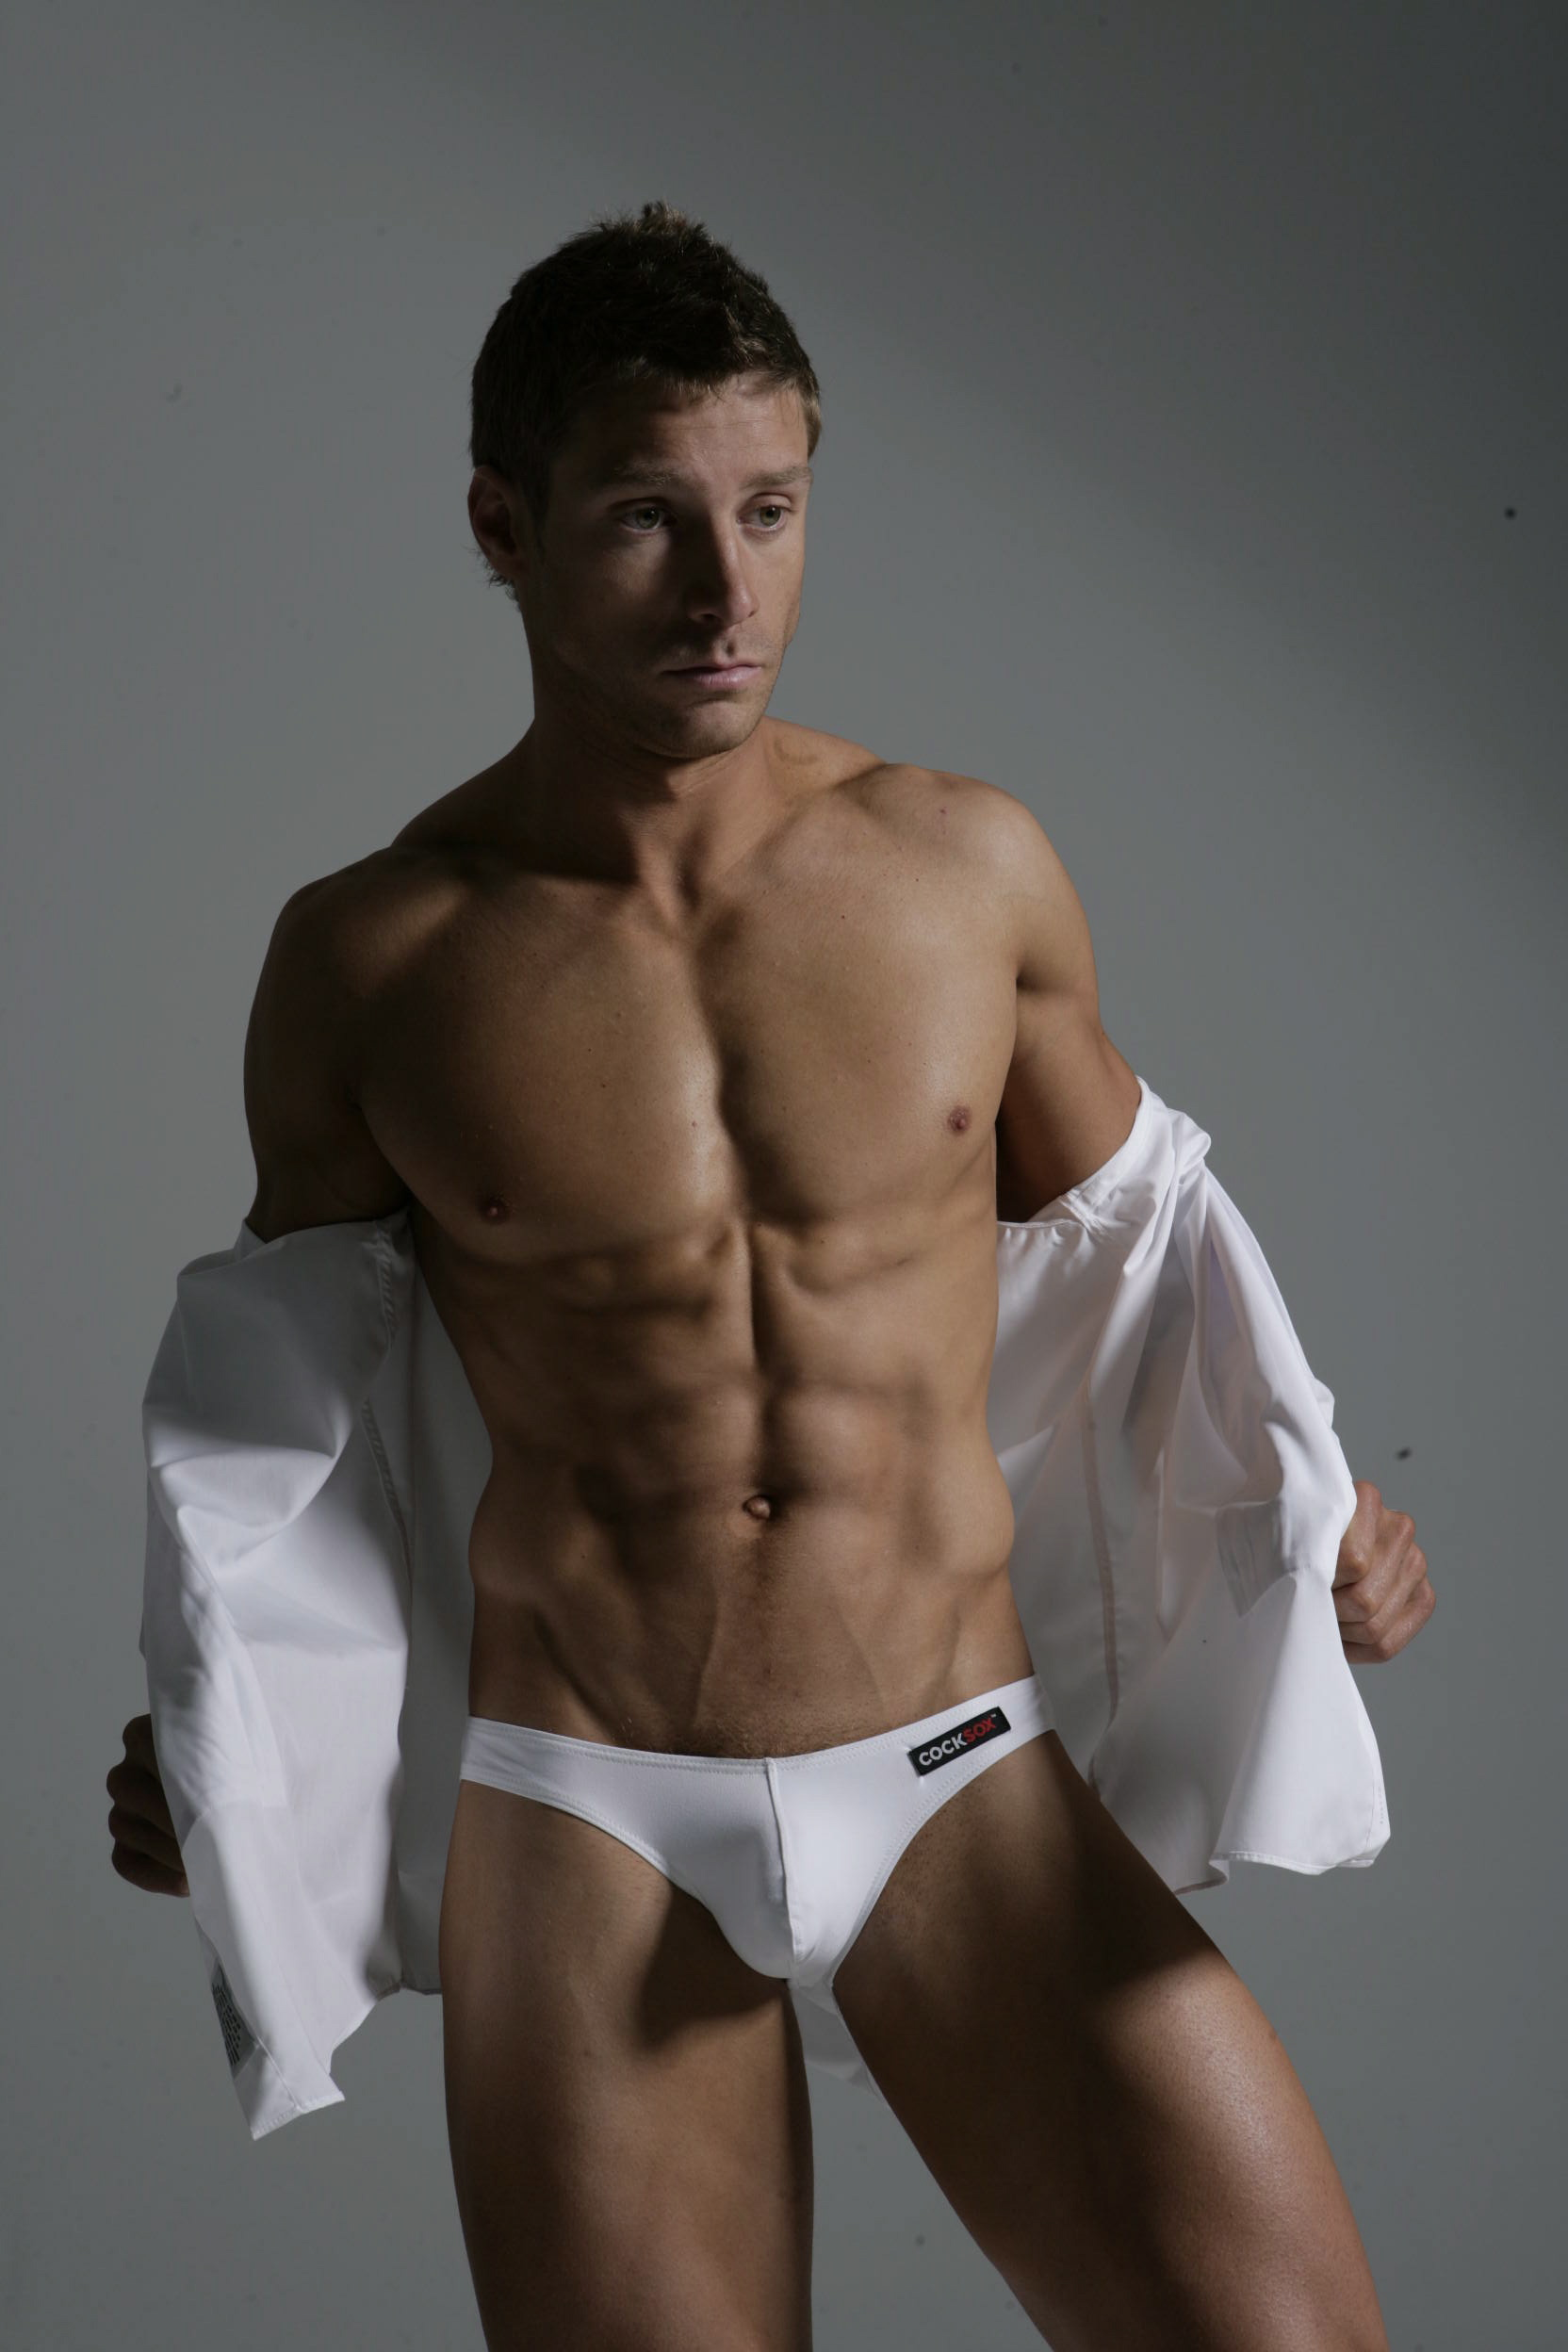 Men's g-strings are the skimpiest underwear style with a small pouch, string waistband and a string holding the pouch from below. It is a one of the ideal choice and .